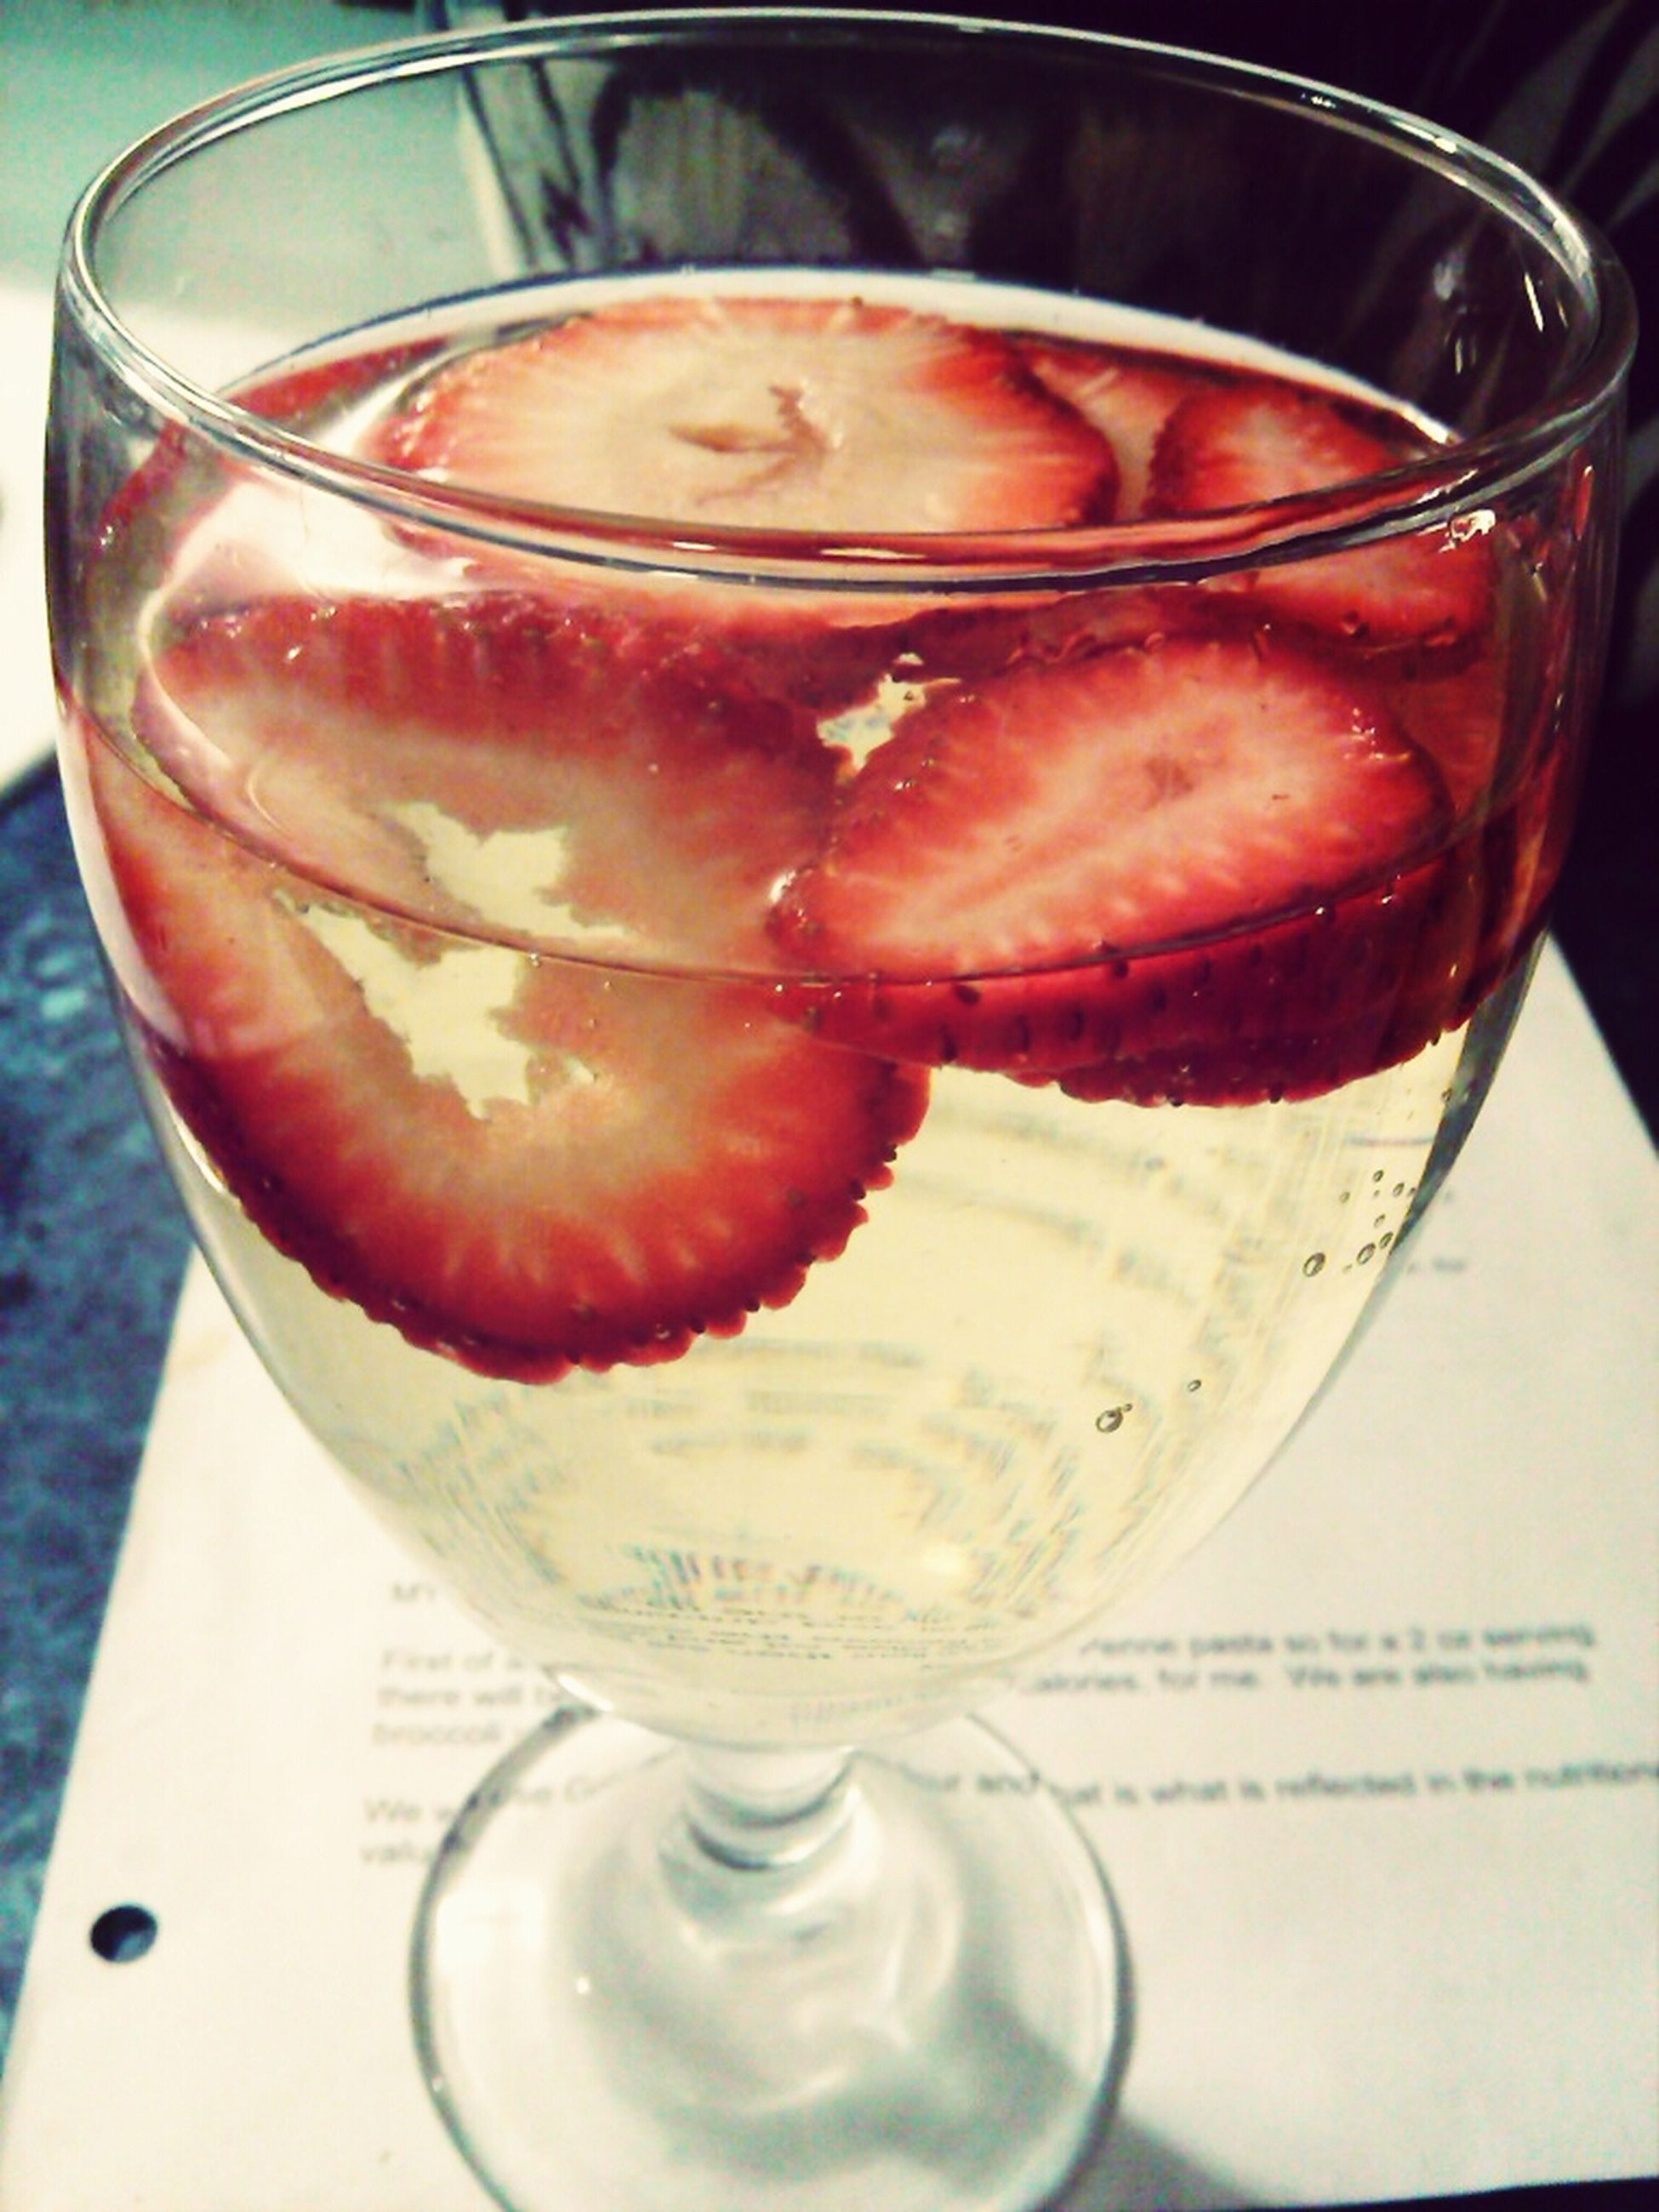 food and drink, freshness, drink, drinking glass, indoors, refreshment, still life, glass - material, table, food, close-up, red, healthy eating, transparent, cocktail, alcohol, glass, drinking straw, serving size, juice